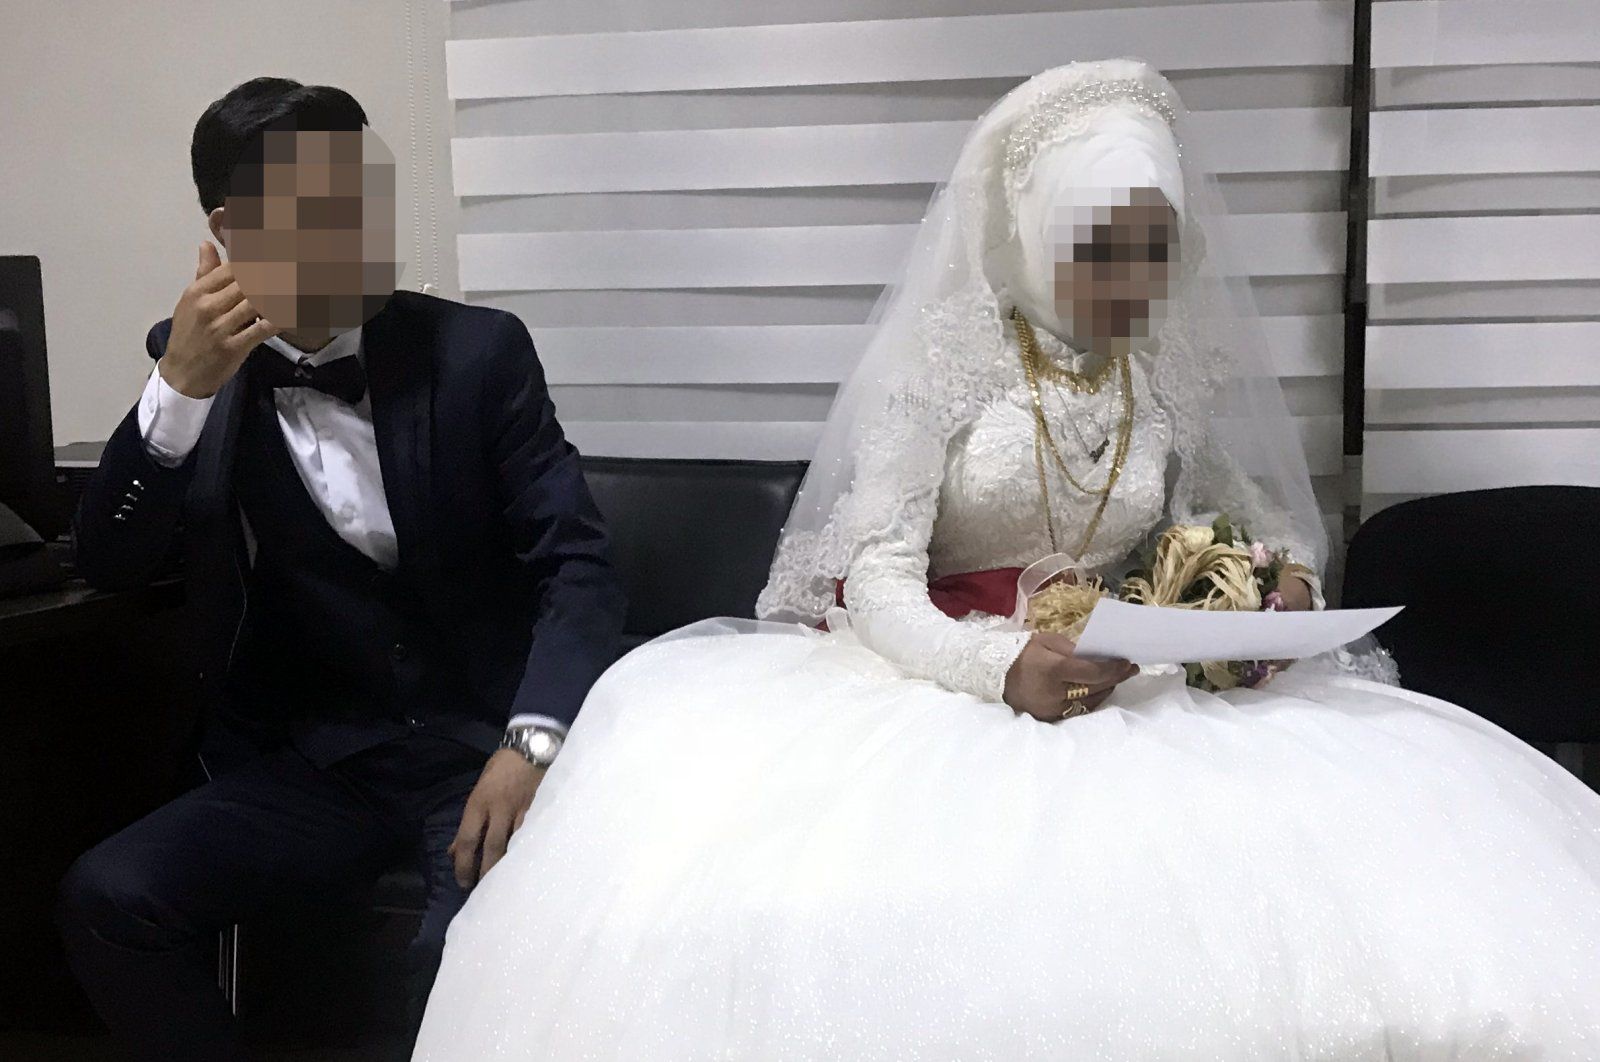 A 14-year-old girl's wedding to an older man (L) was halted by police, in Diyarbakır, southeastern Turkey, Sept. 7, 2018. (AA PHOTO)